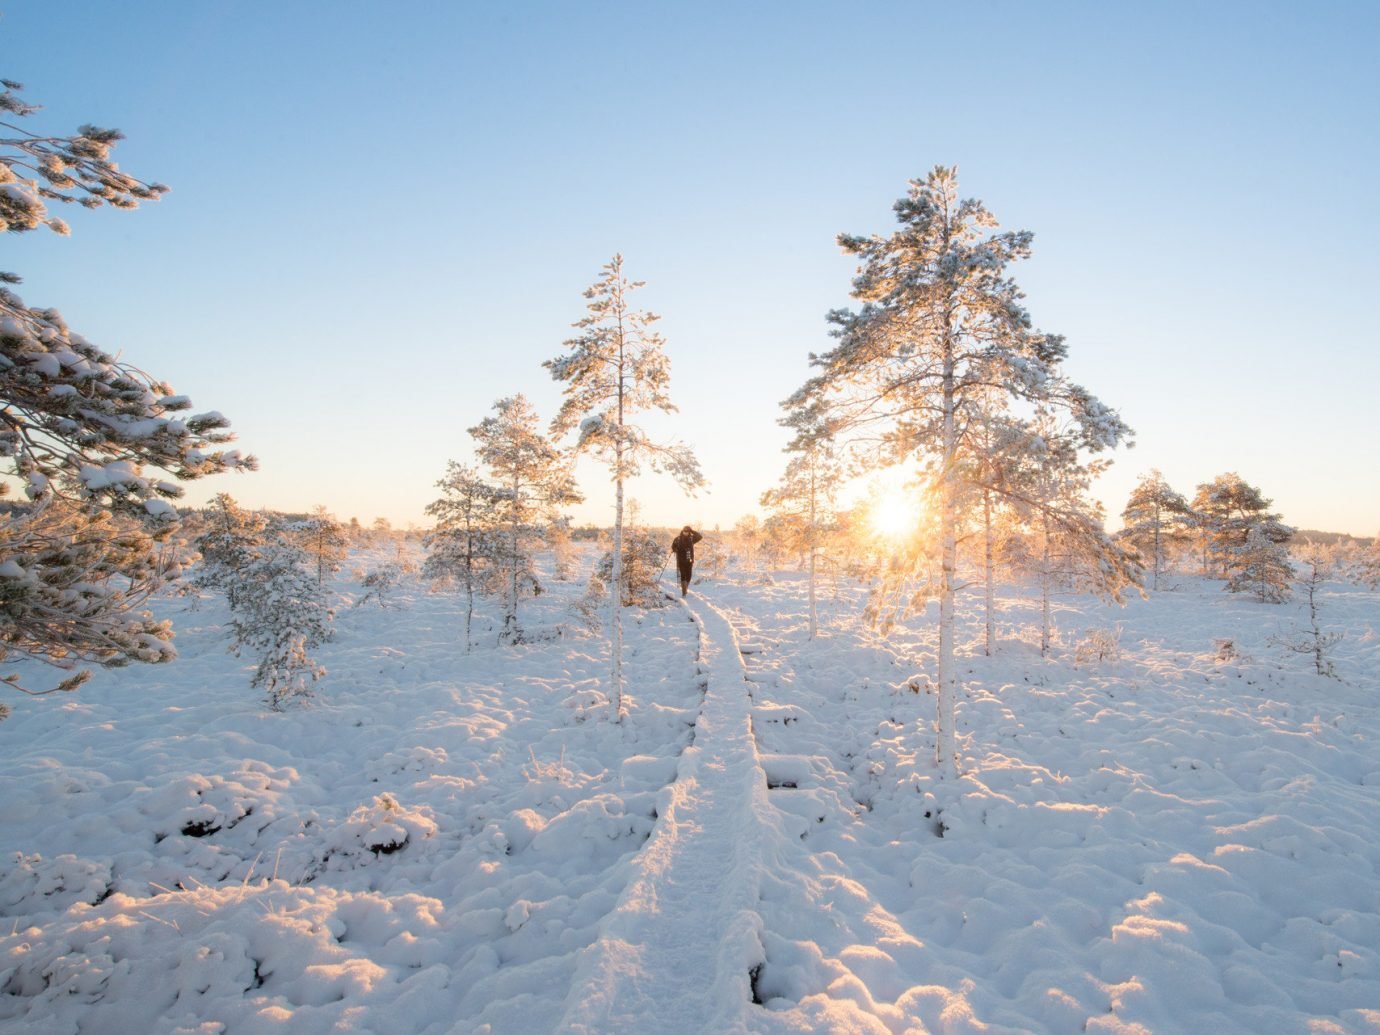 Boutique Hotels Romance Trip Ideas outdoor tree sky snow Winter weather season frost Nature freezing plant woody plant morning conifer sunlight mountain ice shore